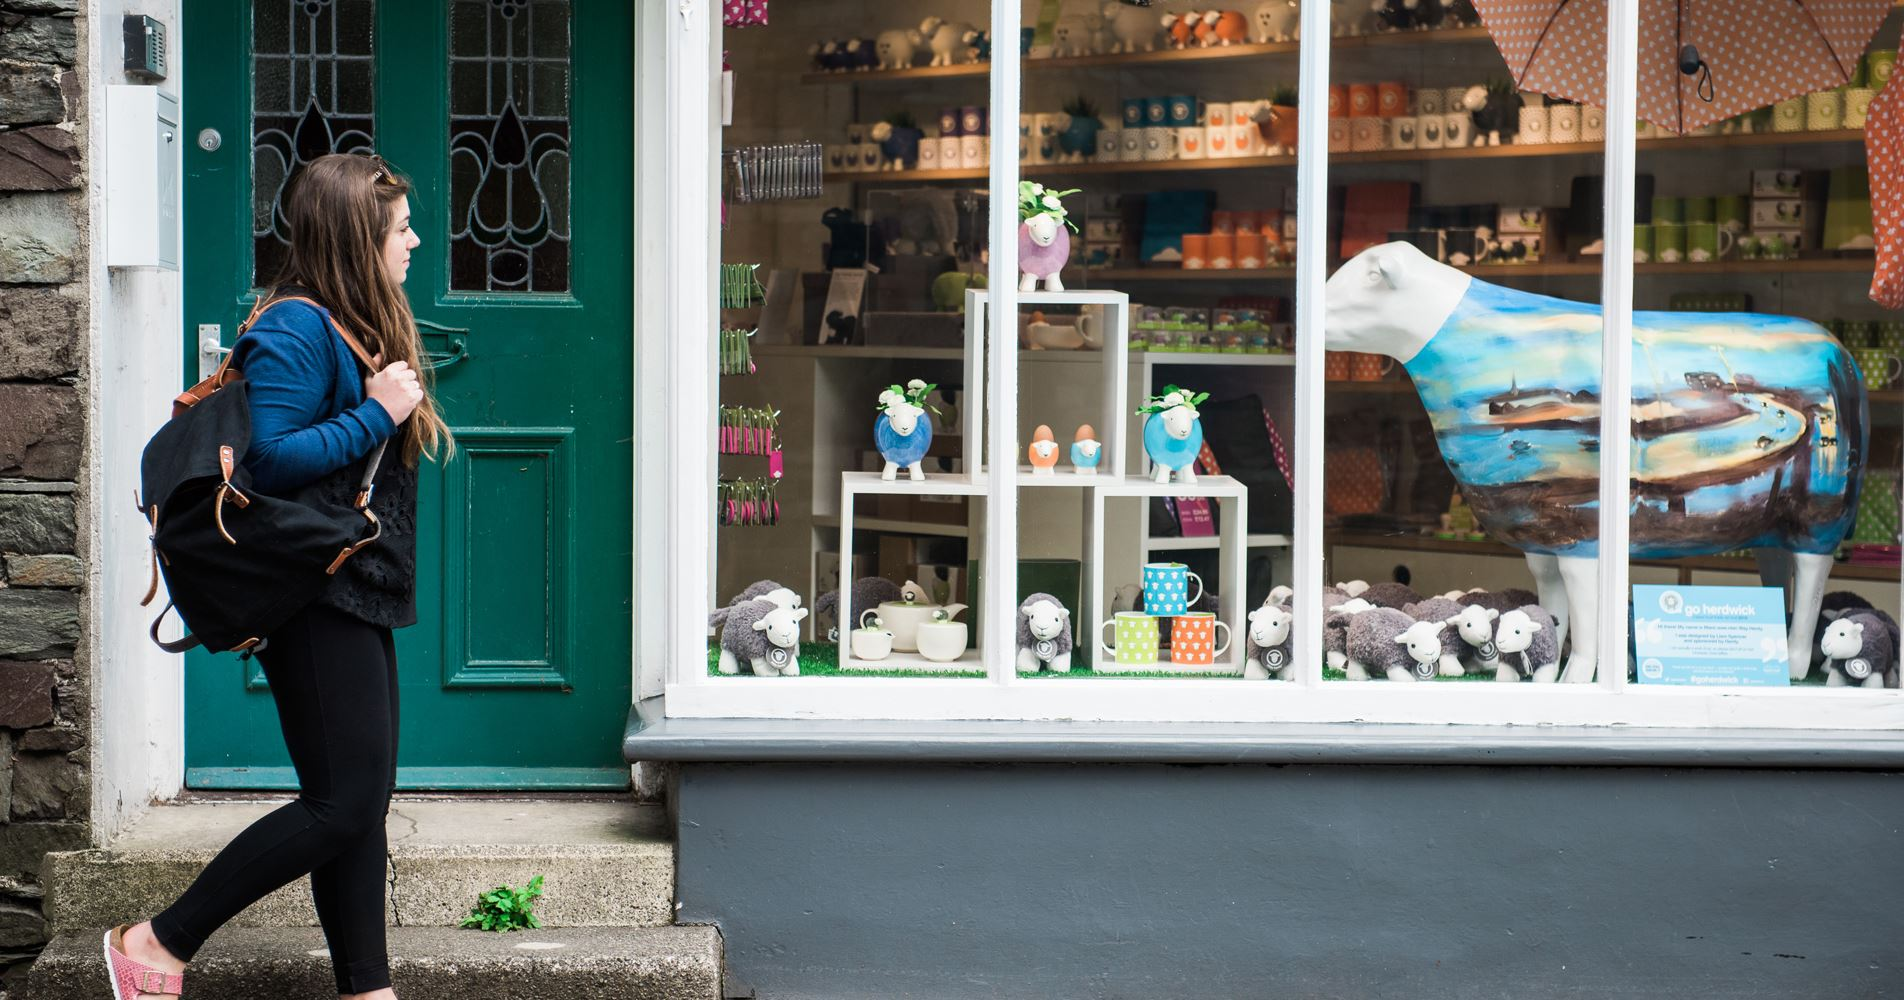 A young woman with a backpack and sandals walks past a colourful gift shop full of bright mugs, local animal toys and paintings